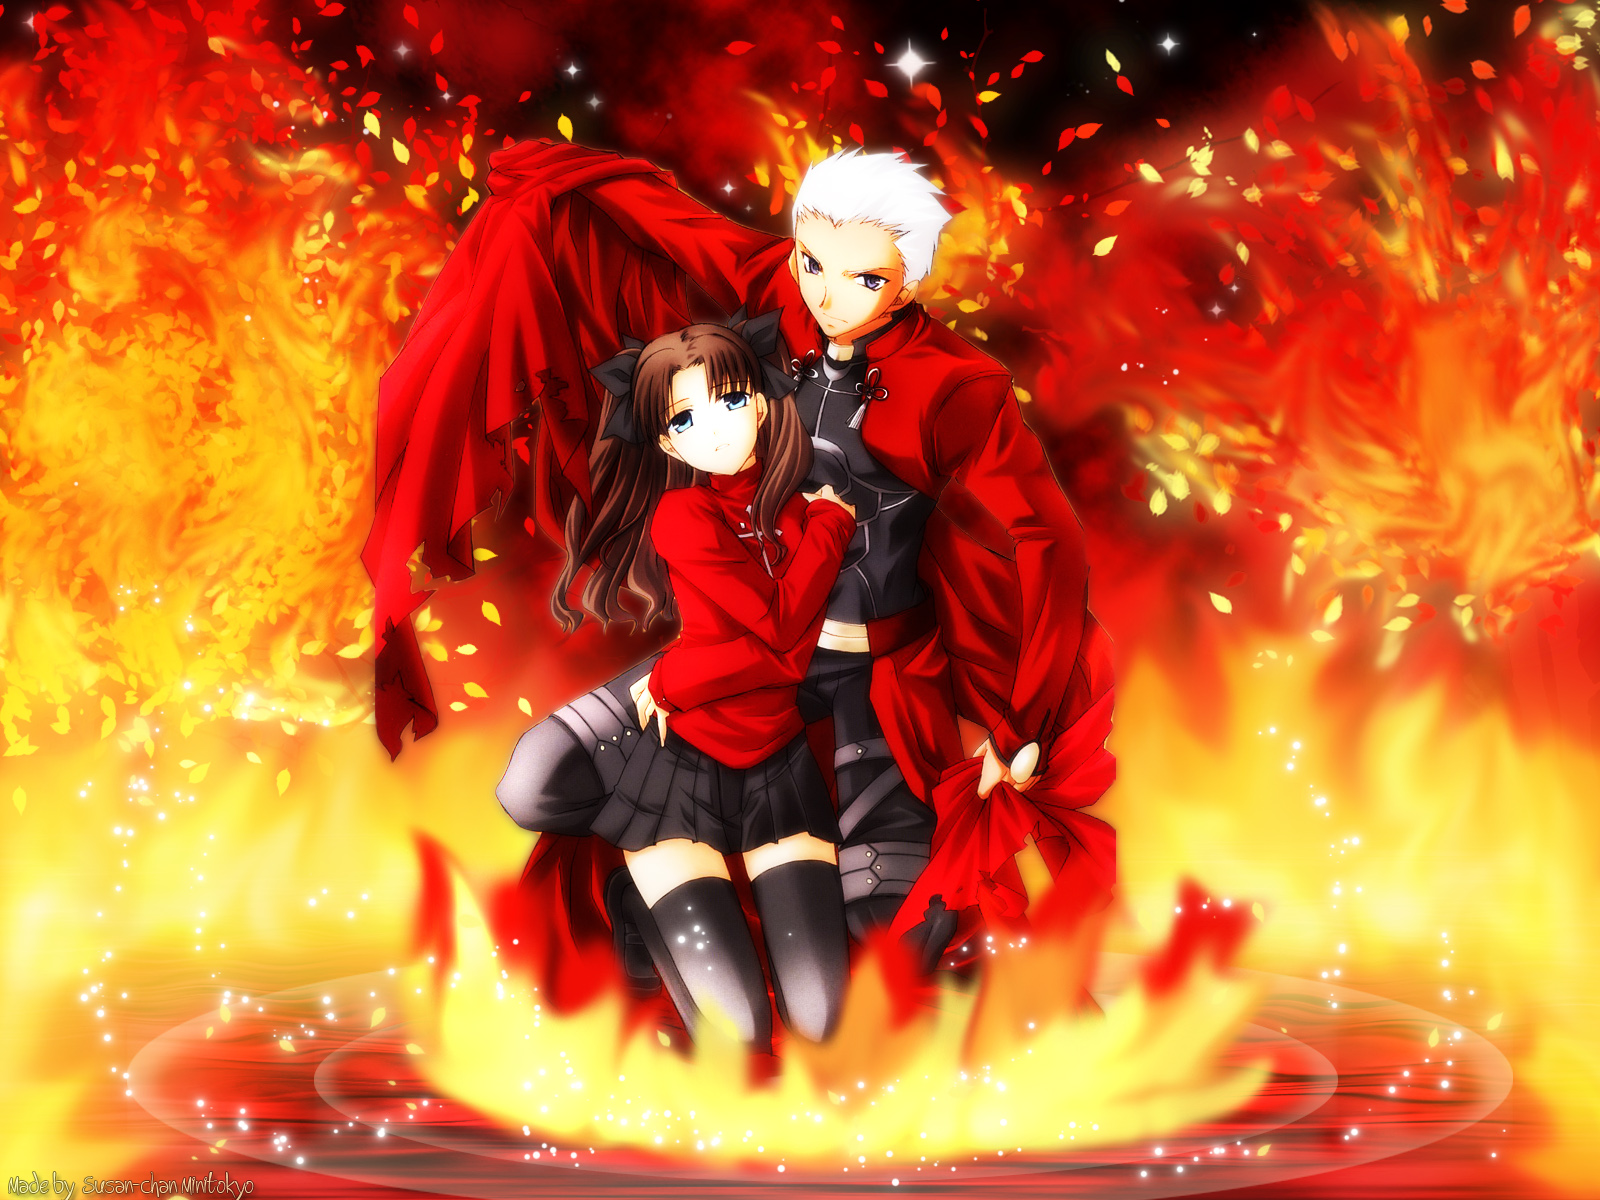 Anime - Fate/Stay Night  Archer Rin Tohsaka Wallpaper